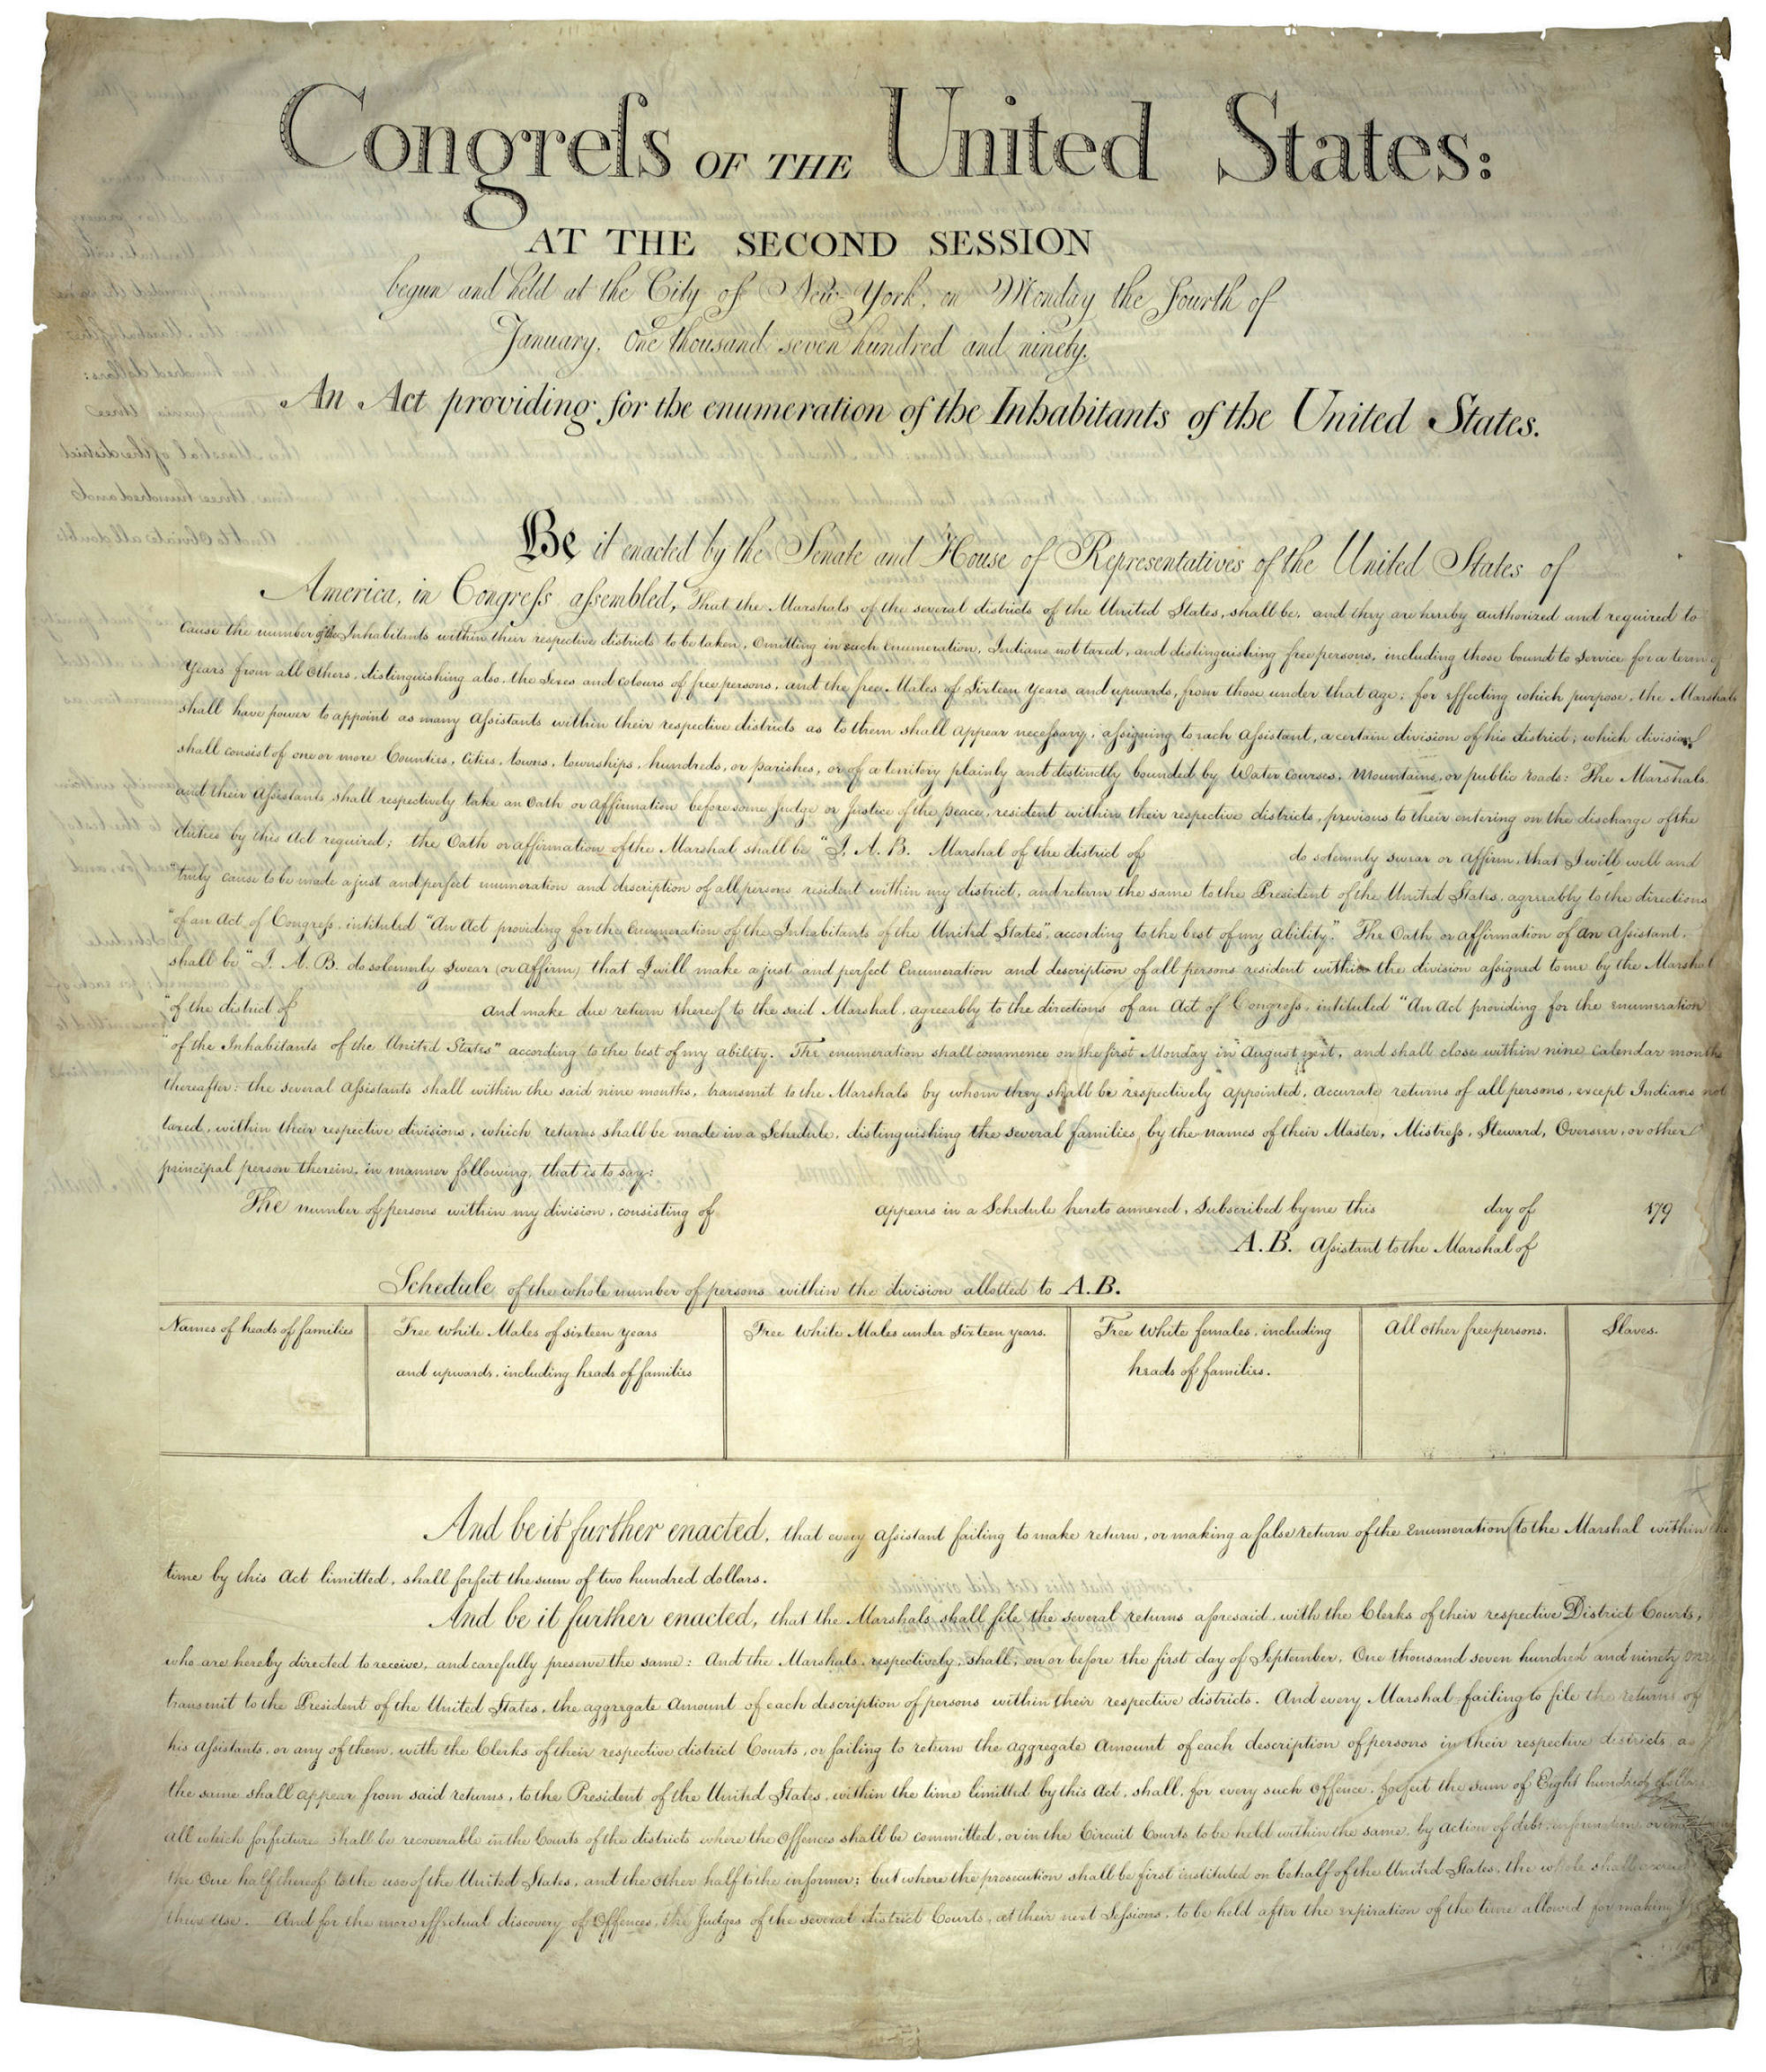 1790 Census Act